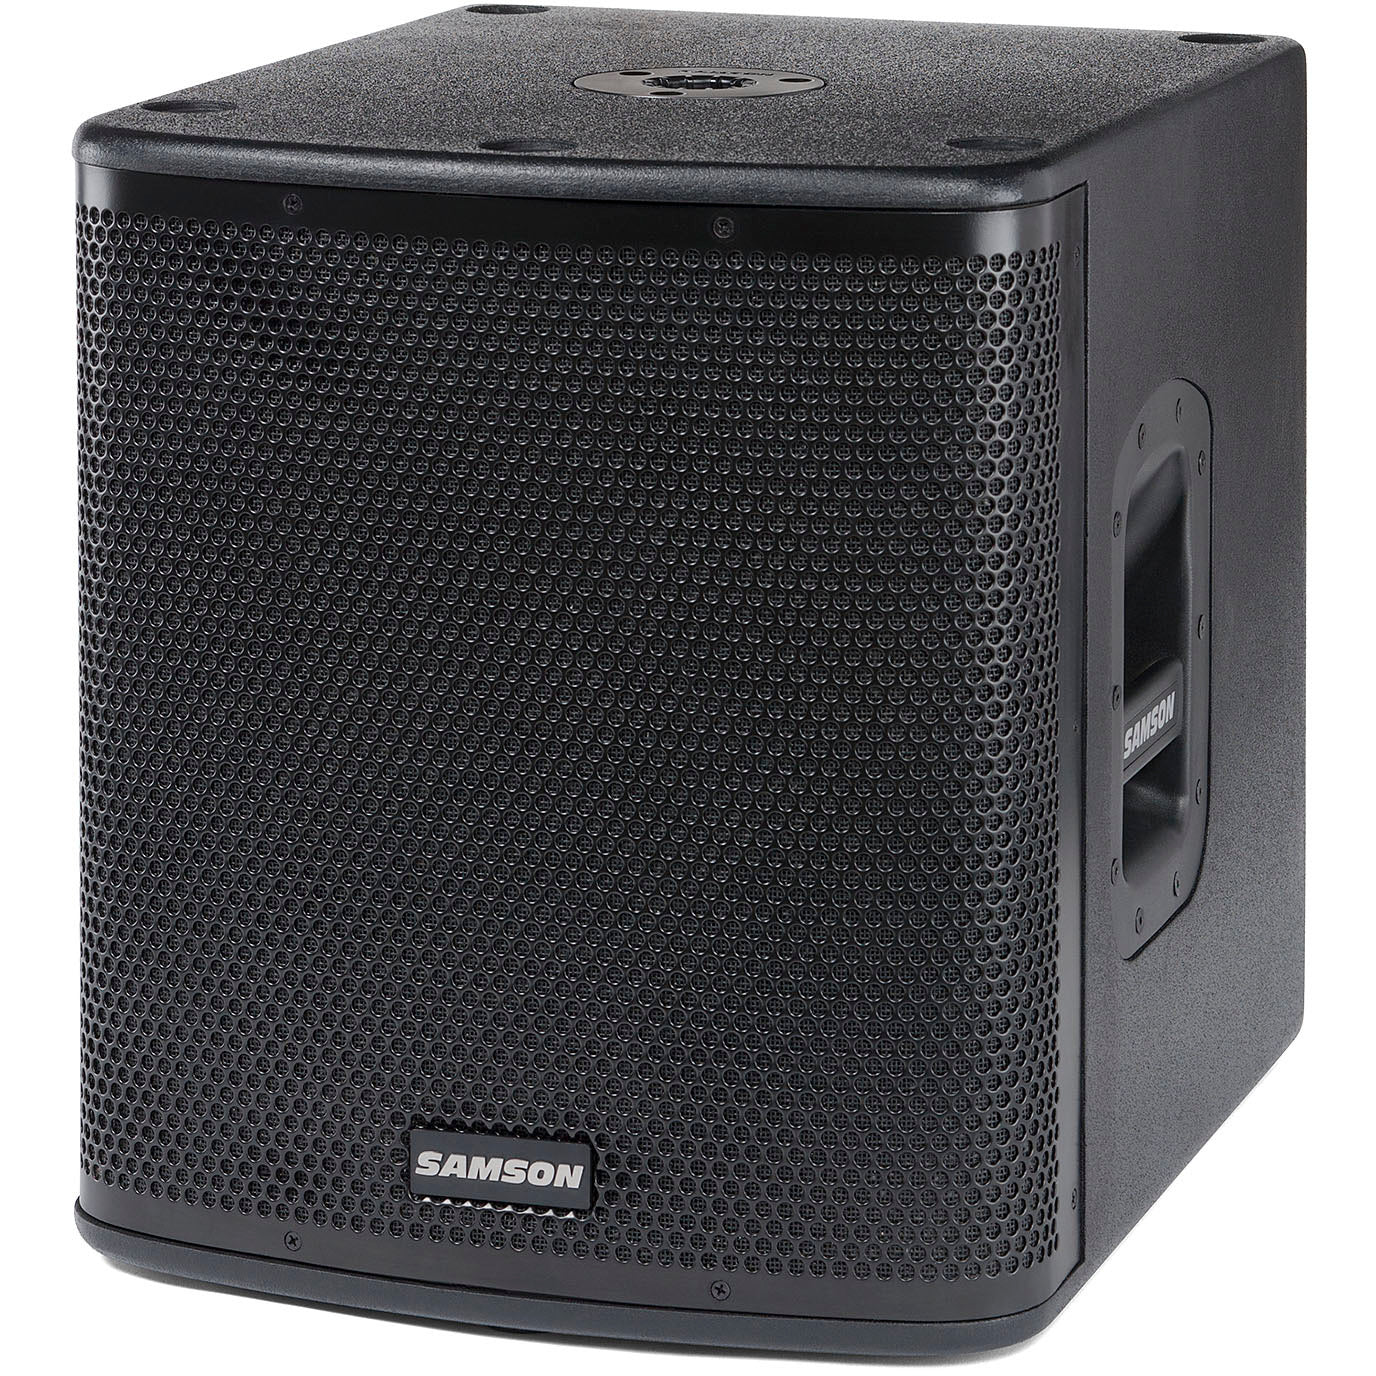 Samson AURO D1200A Compact class D active subwoofer.700 watts, low pass/limiter